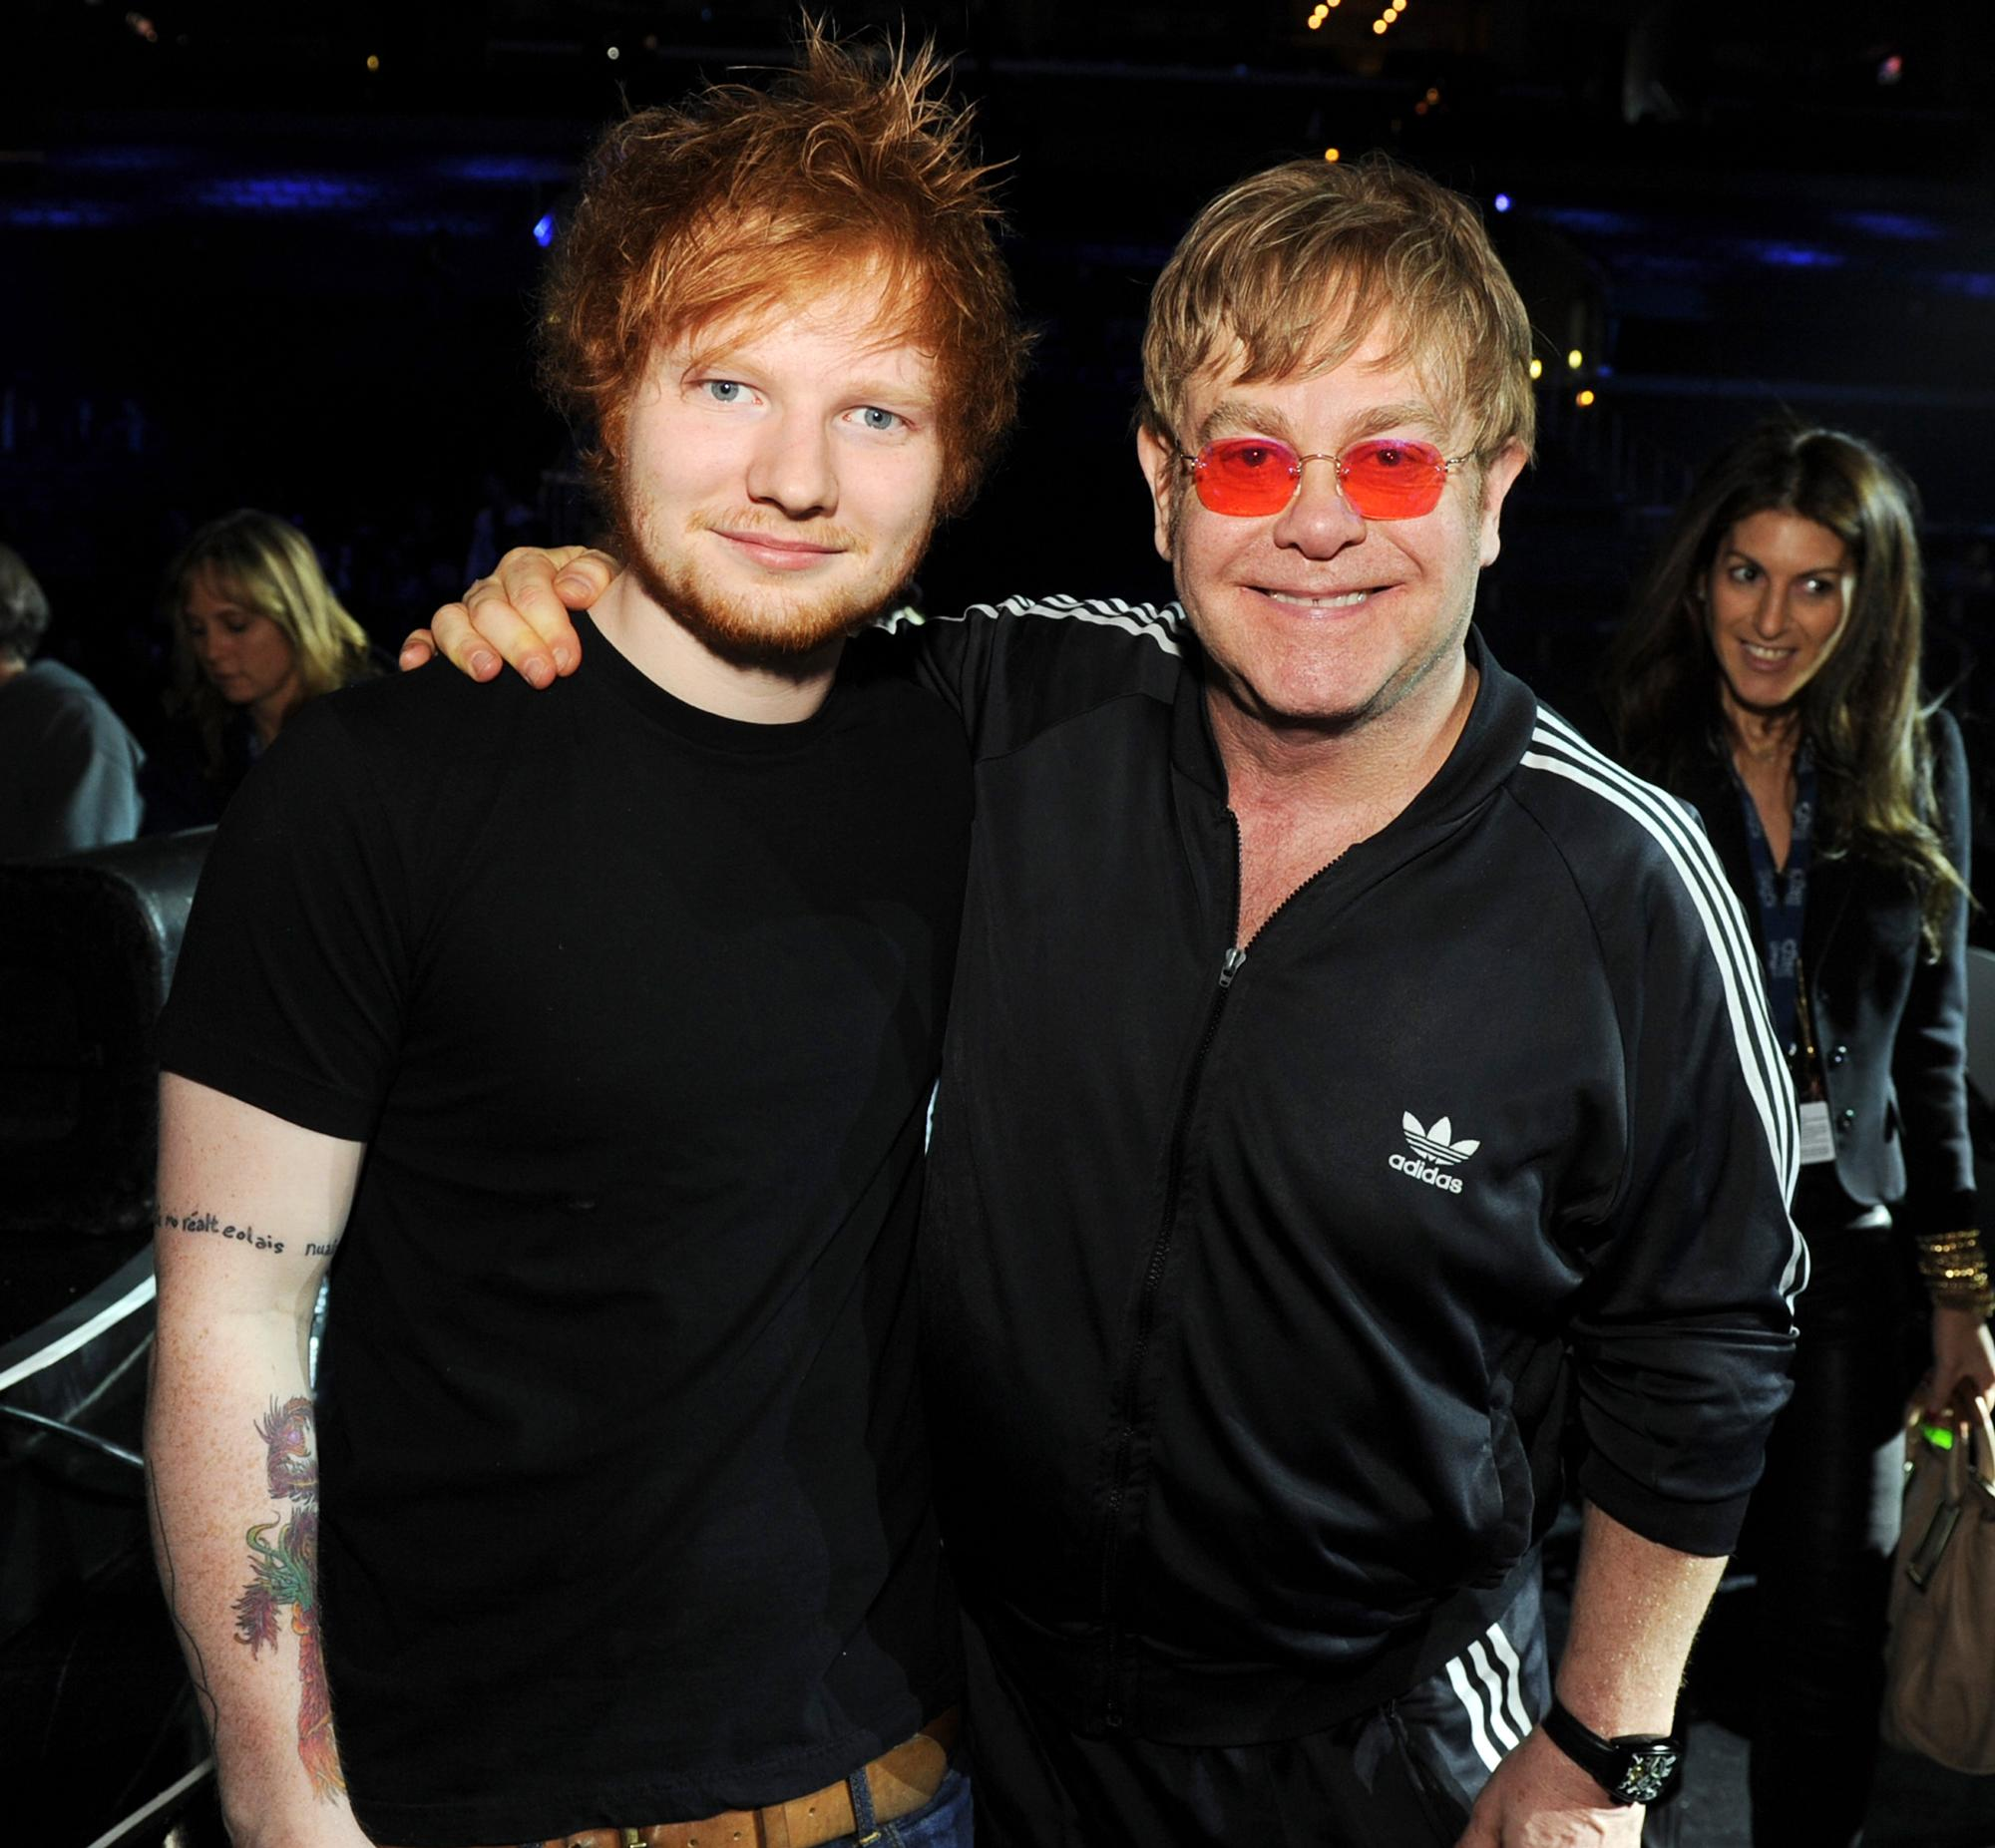 No, Ed Sheeran is not married. . . yet